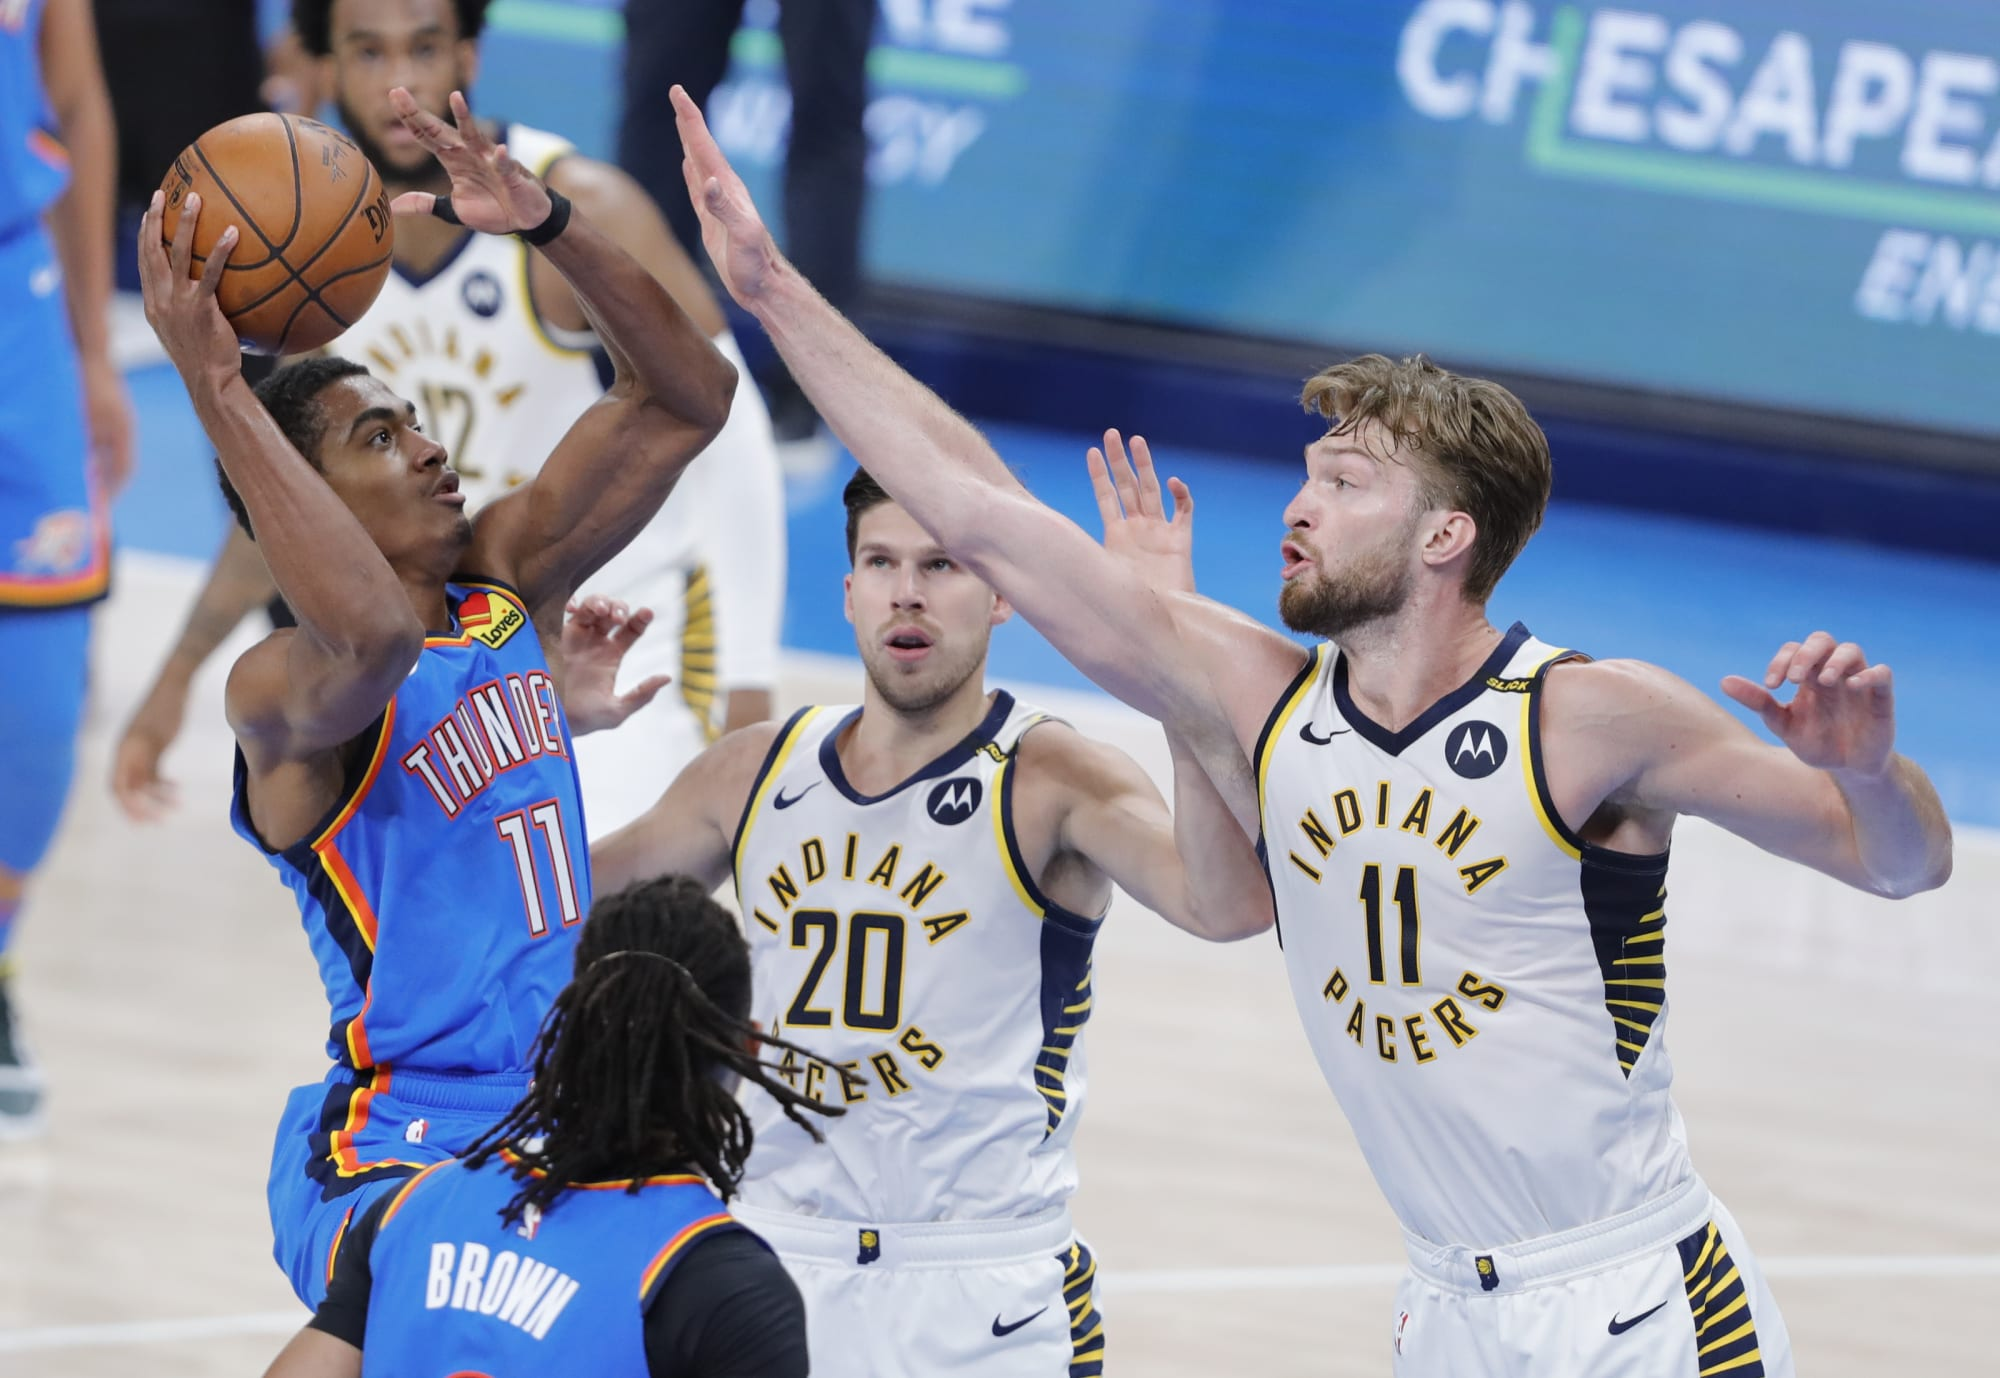 OKC Thunder: Domantas Sabonis may be wishing for simpler times